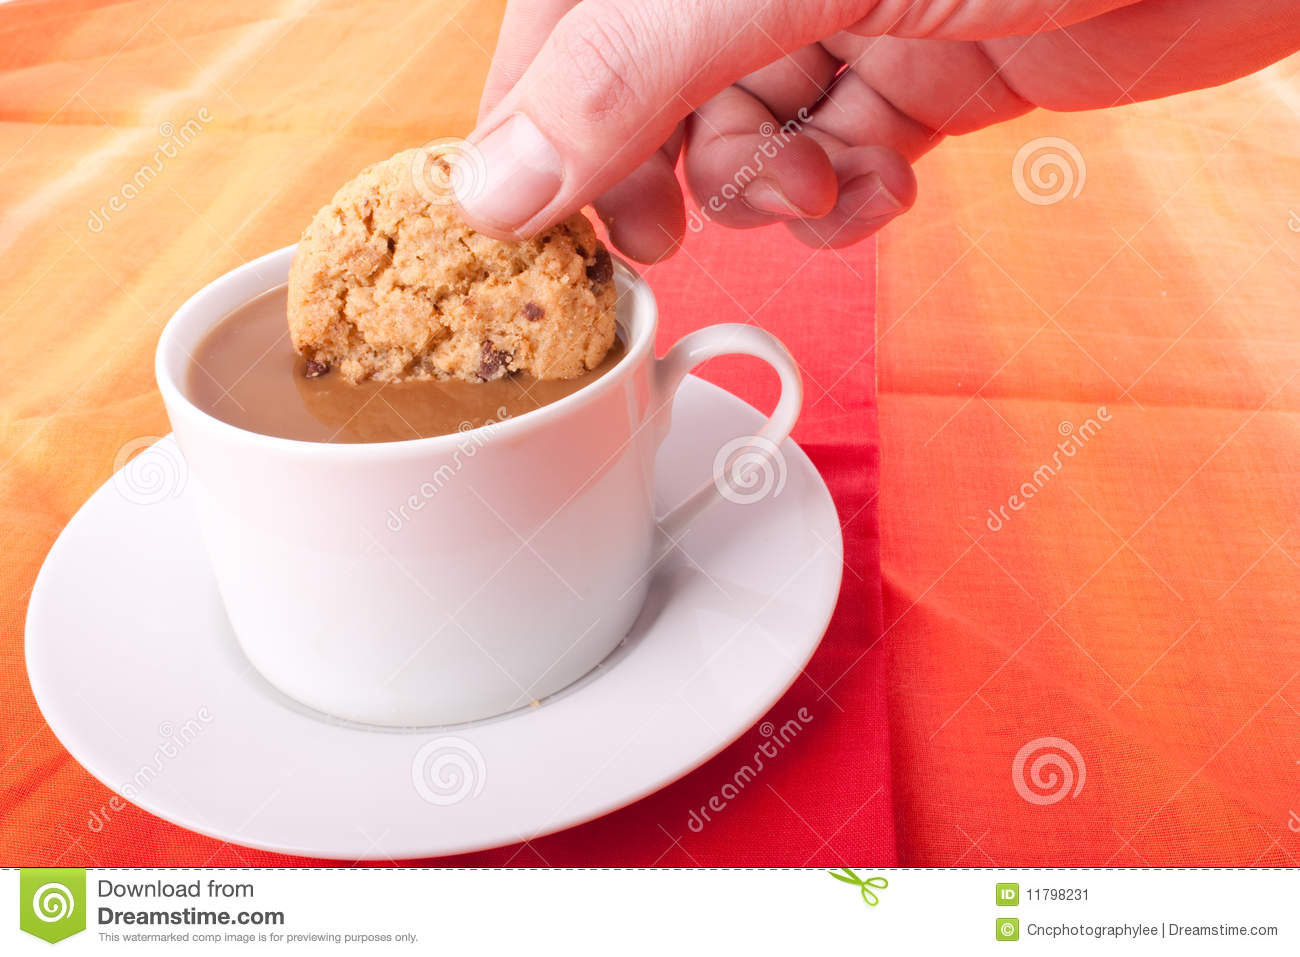 Dipping Biscuit Stock Image - Image: 11798231